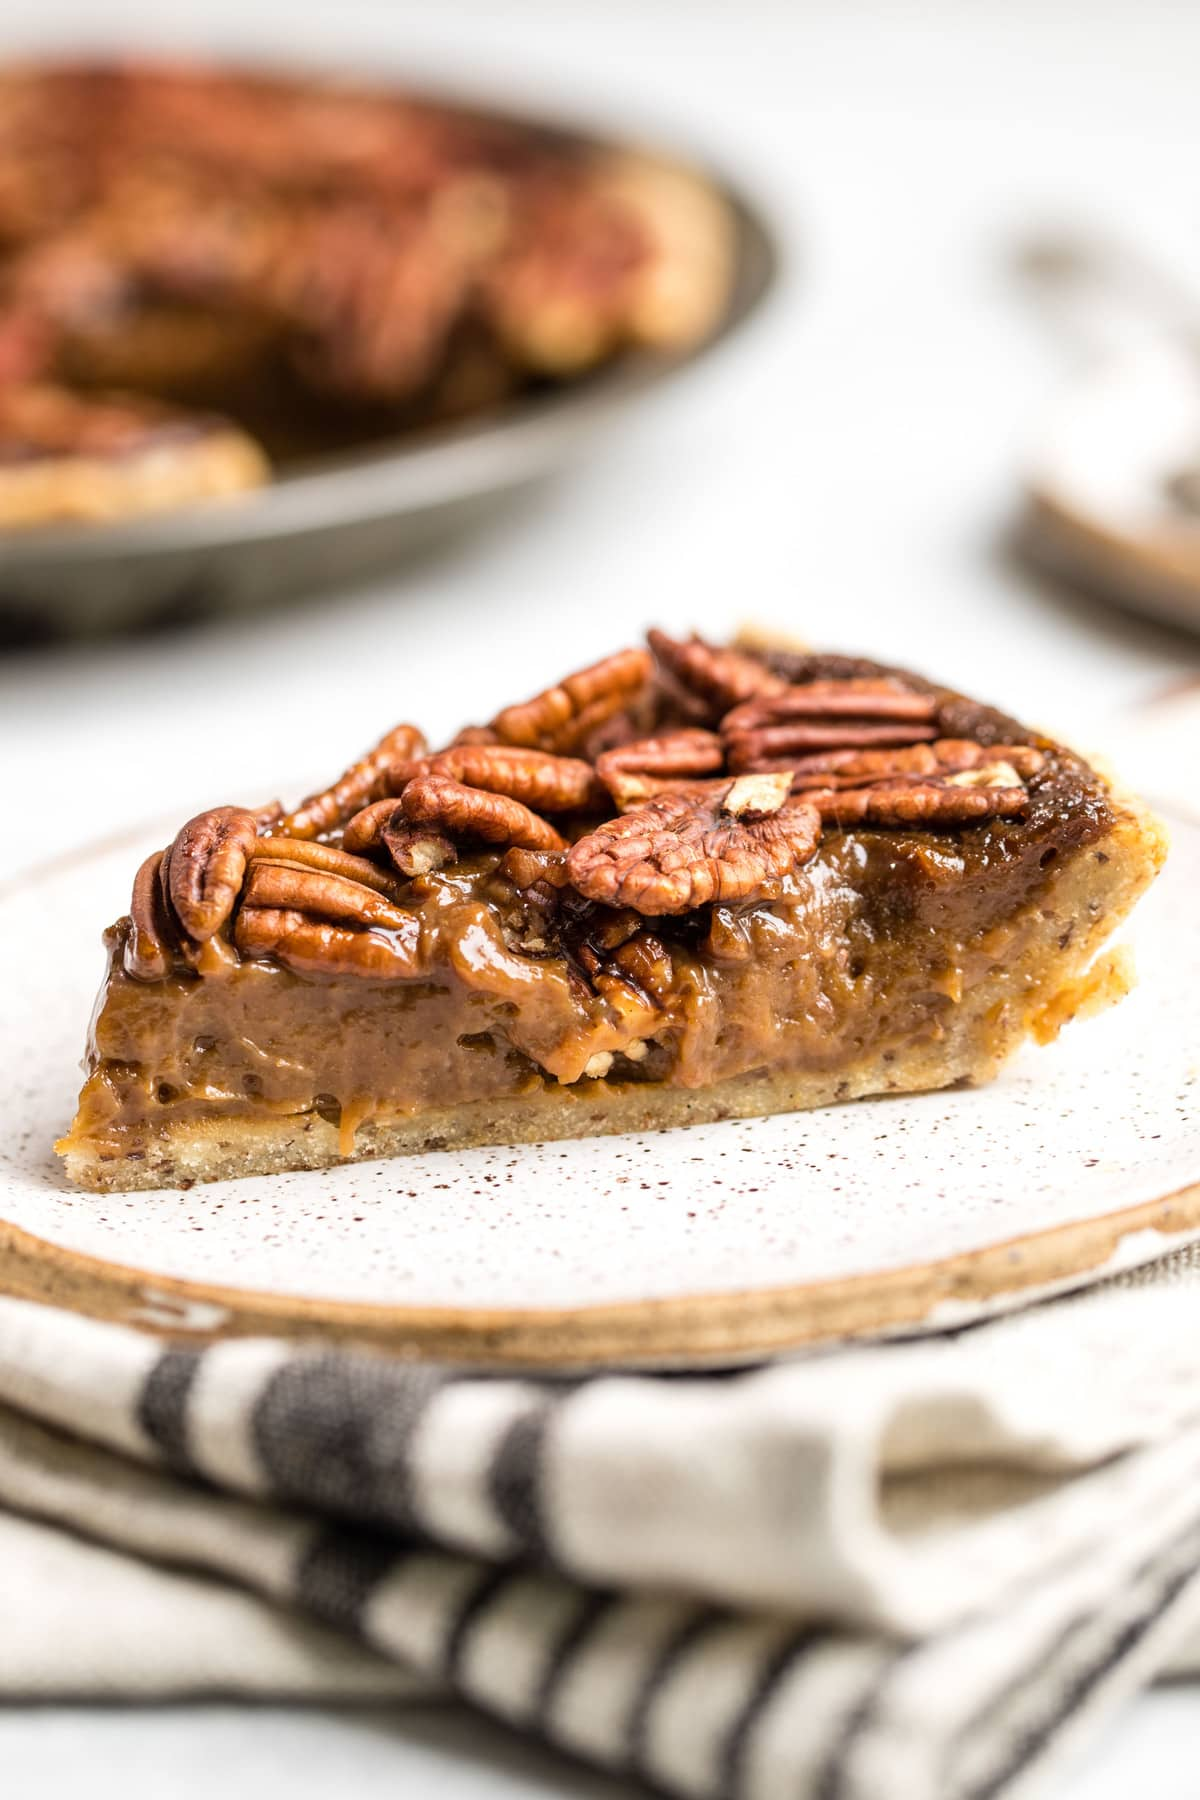 side slice of pecan pie with layers of filling, pecans, and pie crust on white plate